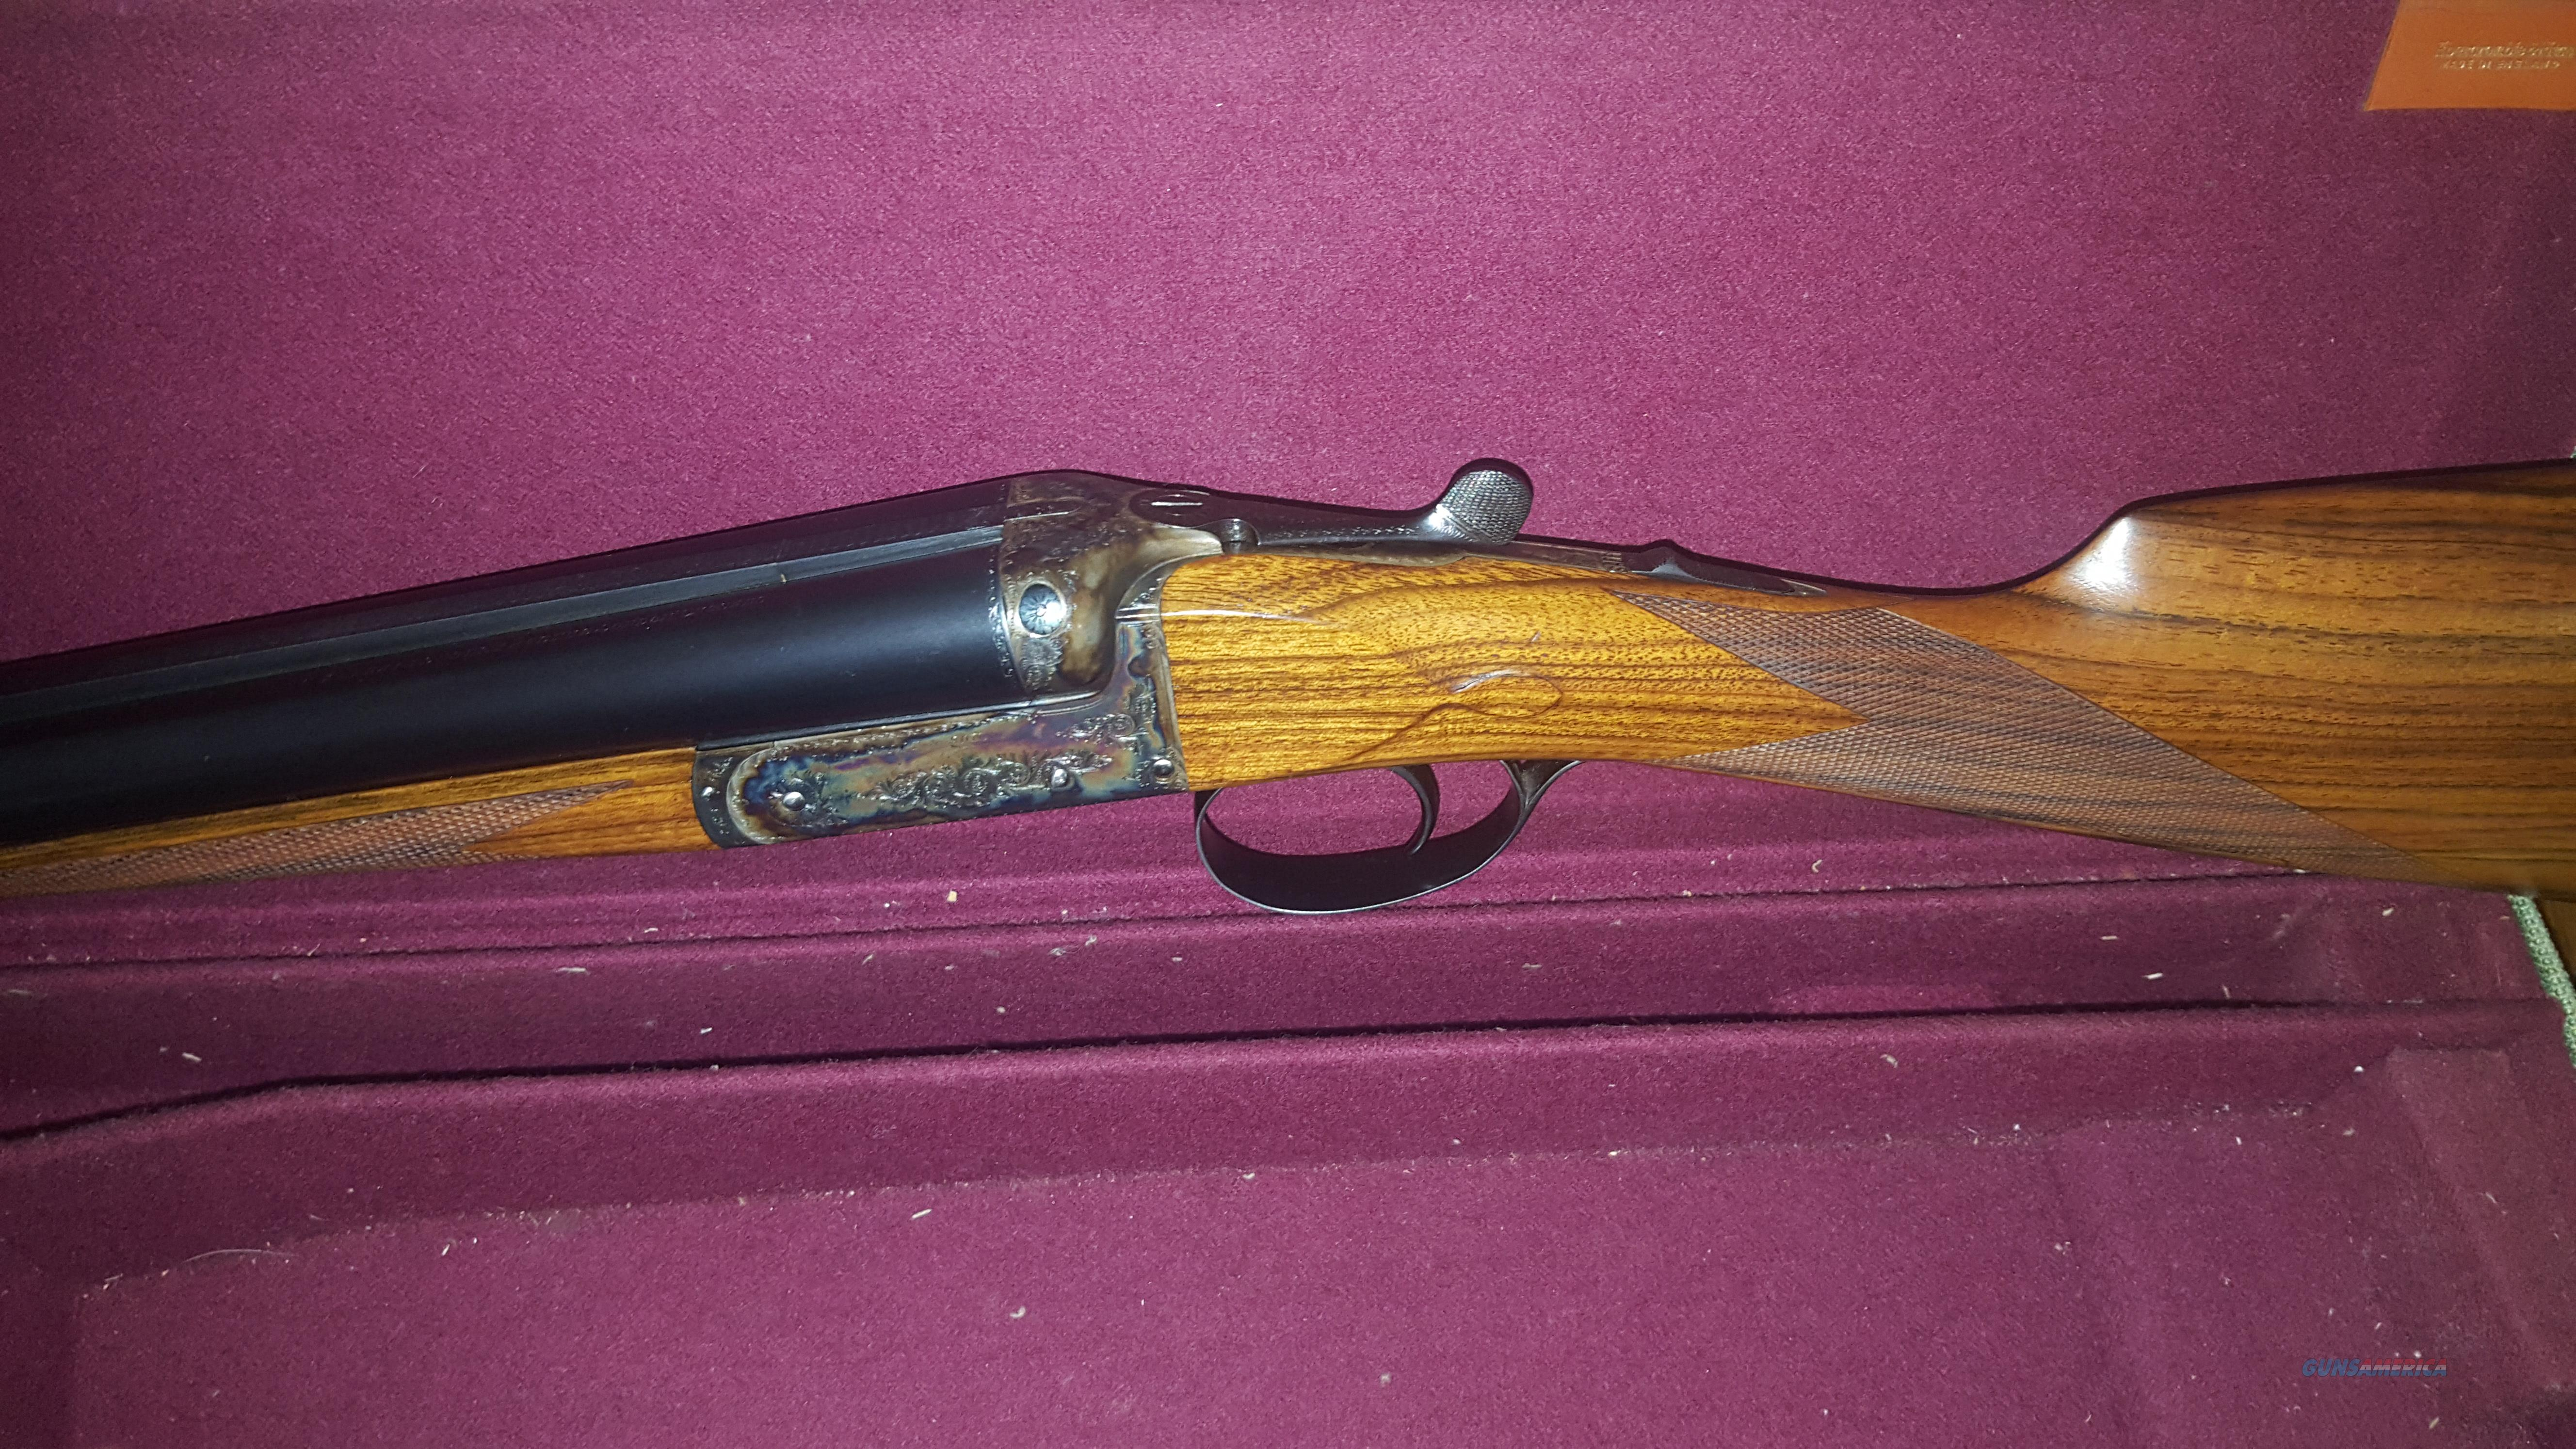 WC Scott Model 160 Ejector (Exceptional)   Guns > Shotguns > W.C. Scott Shotguns